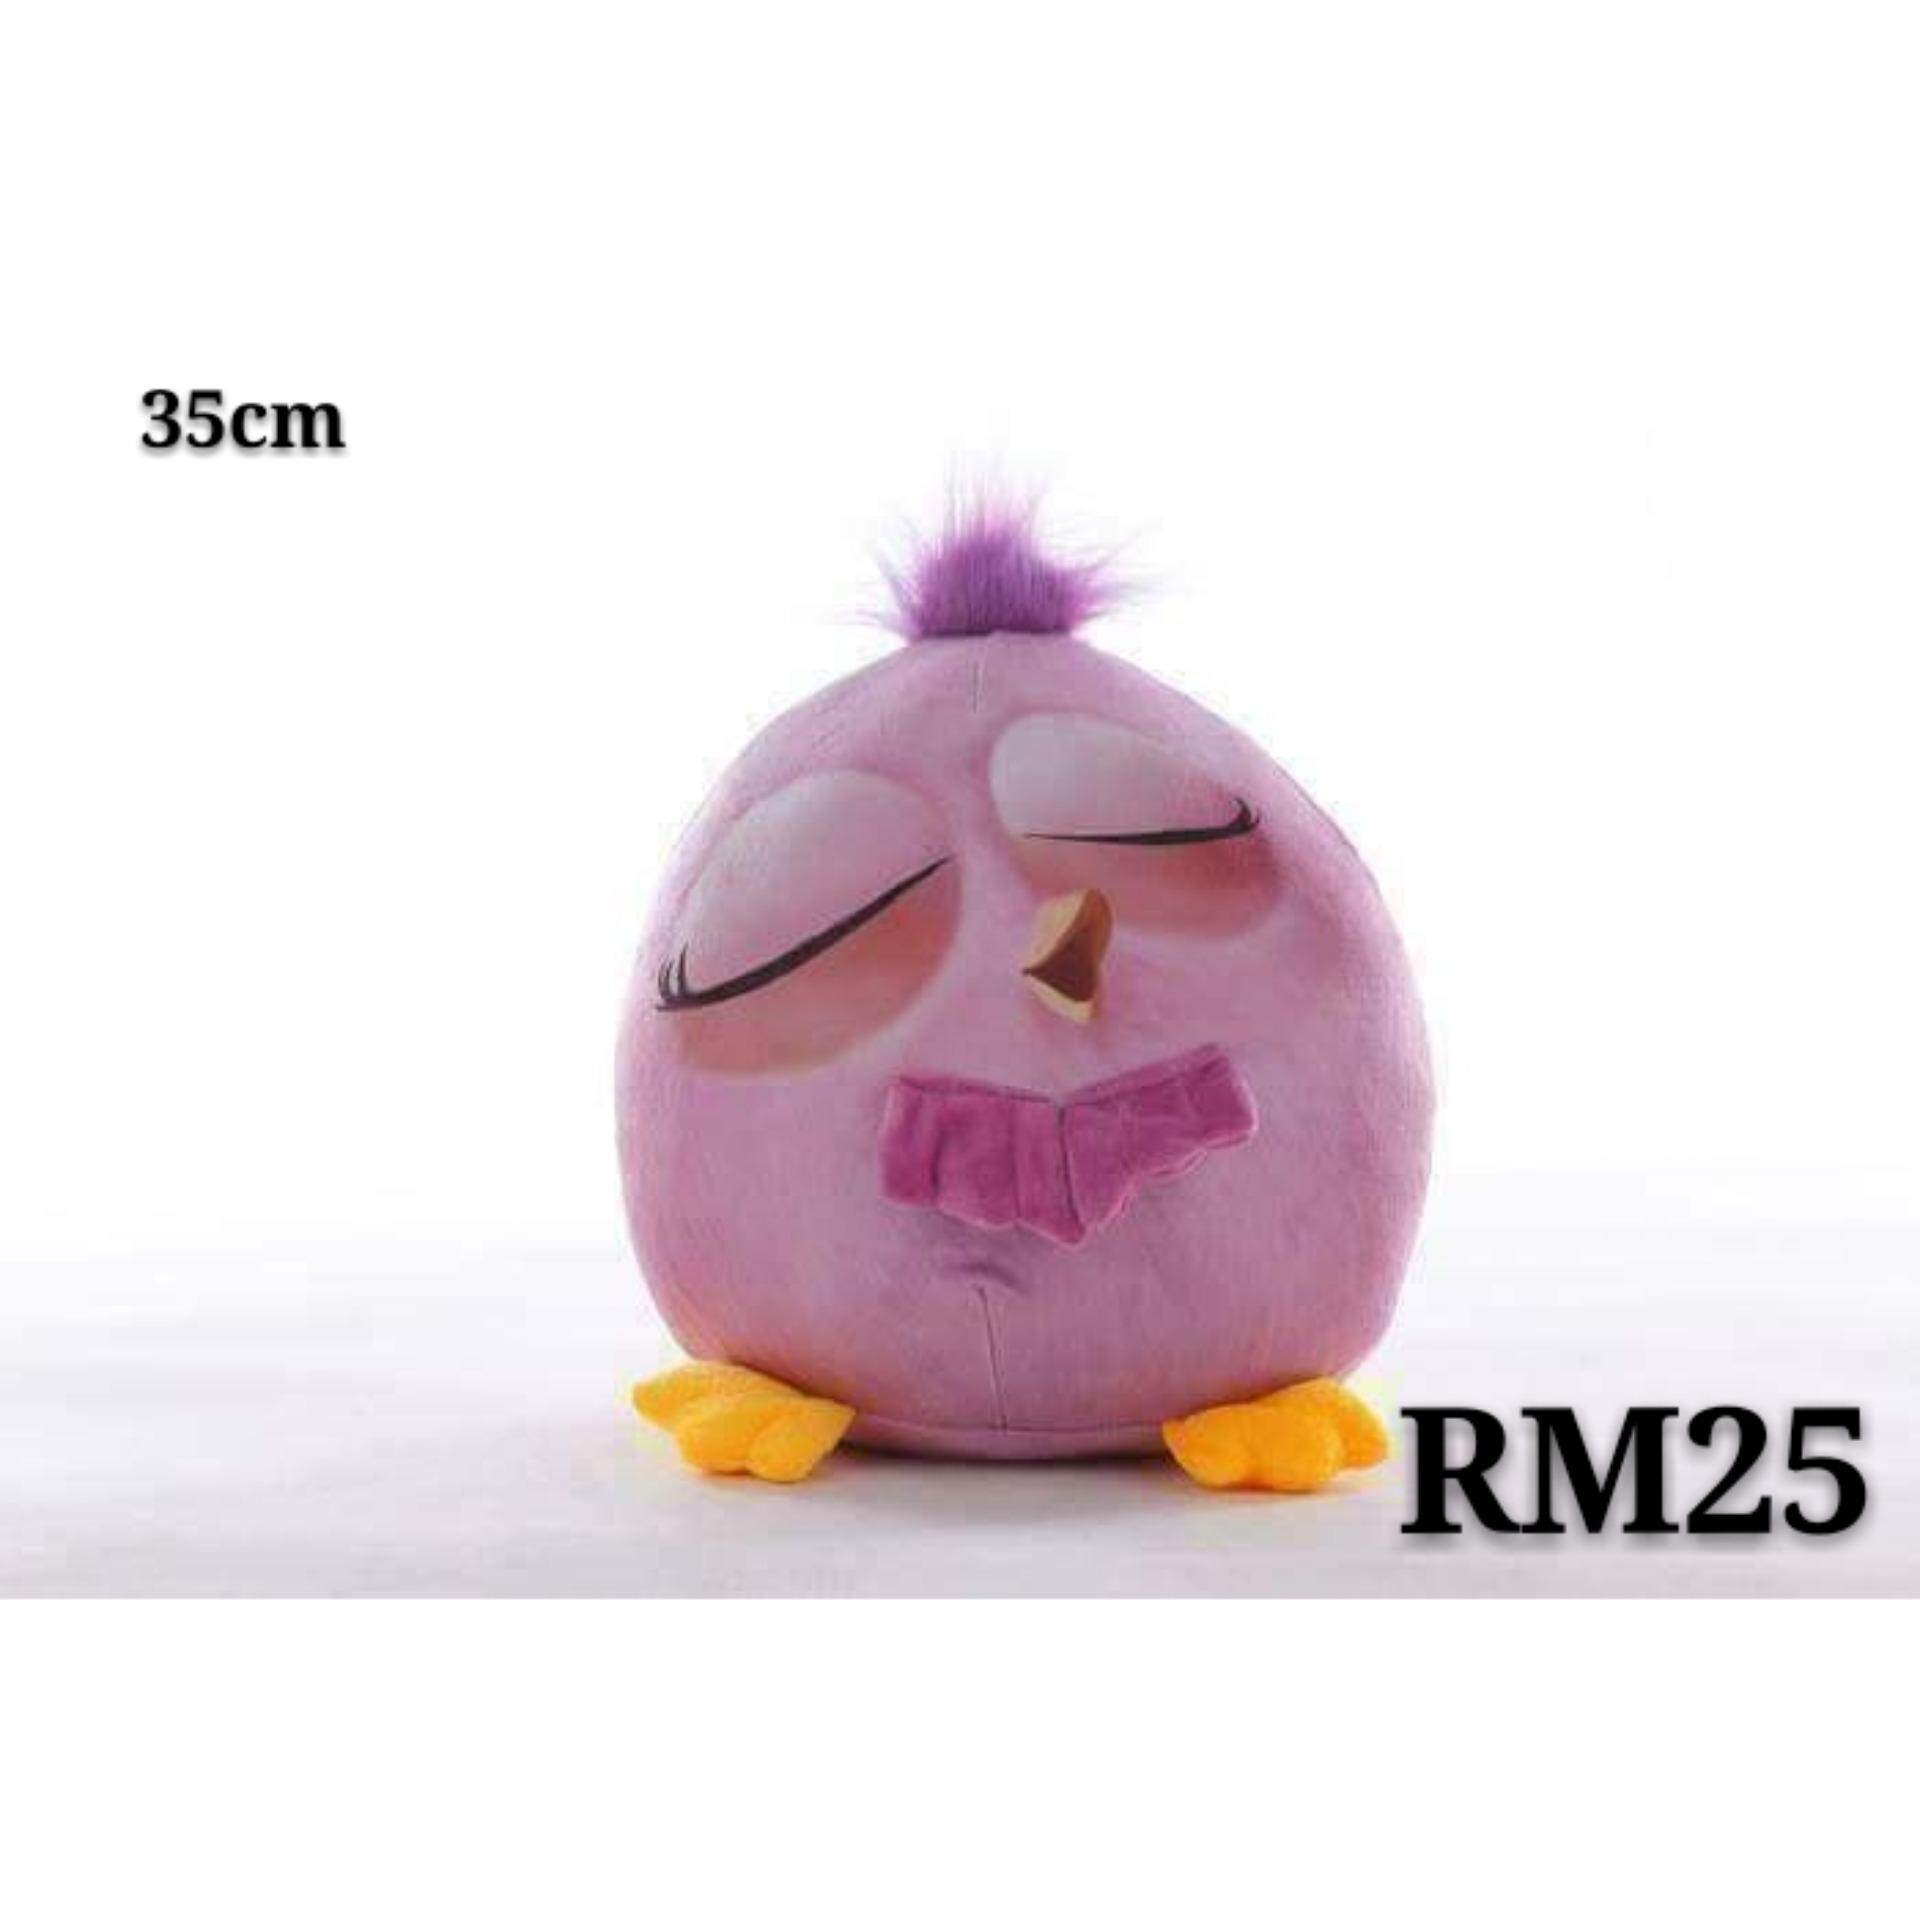 35cm Hatchling Angry Bird Pillow